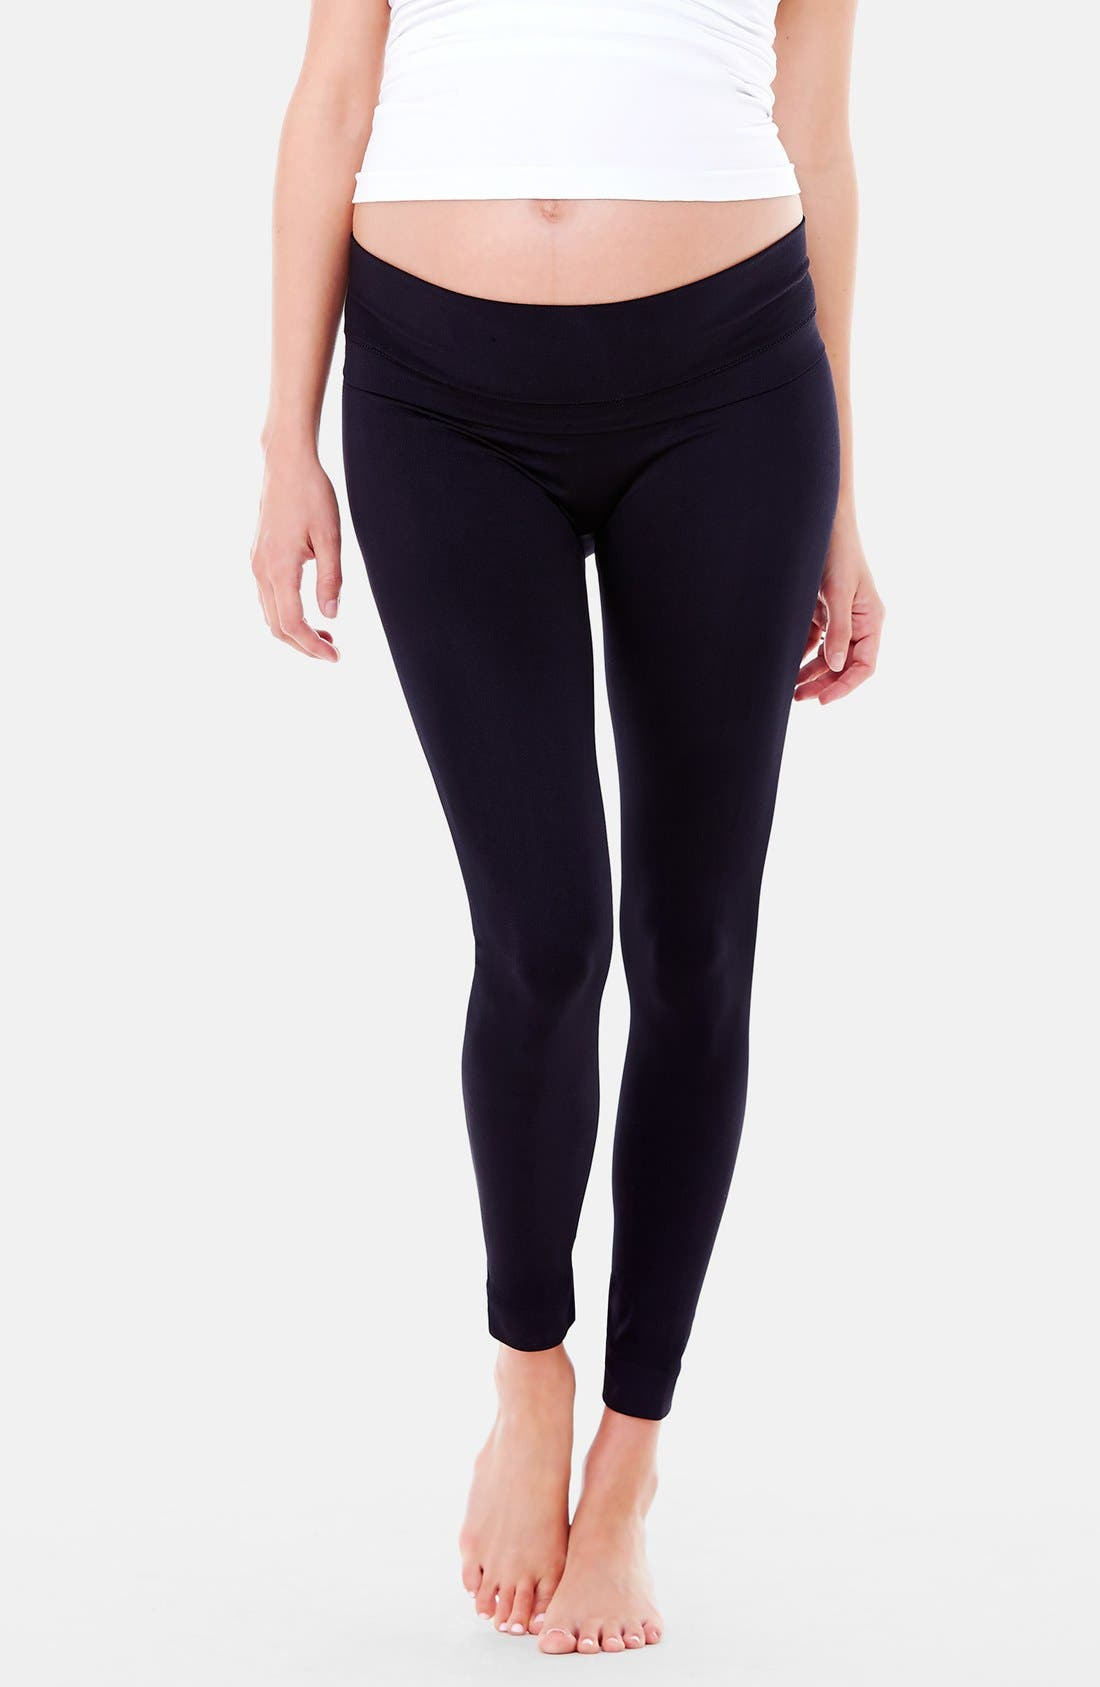 Ingrid & Isabel® 'Everyday' Seamless Maternity Leggings